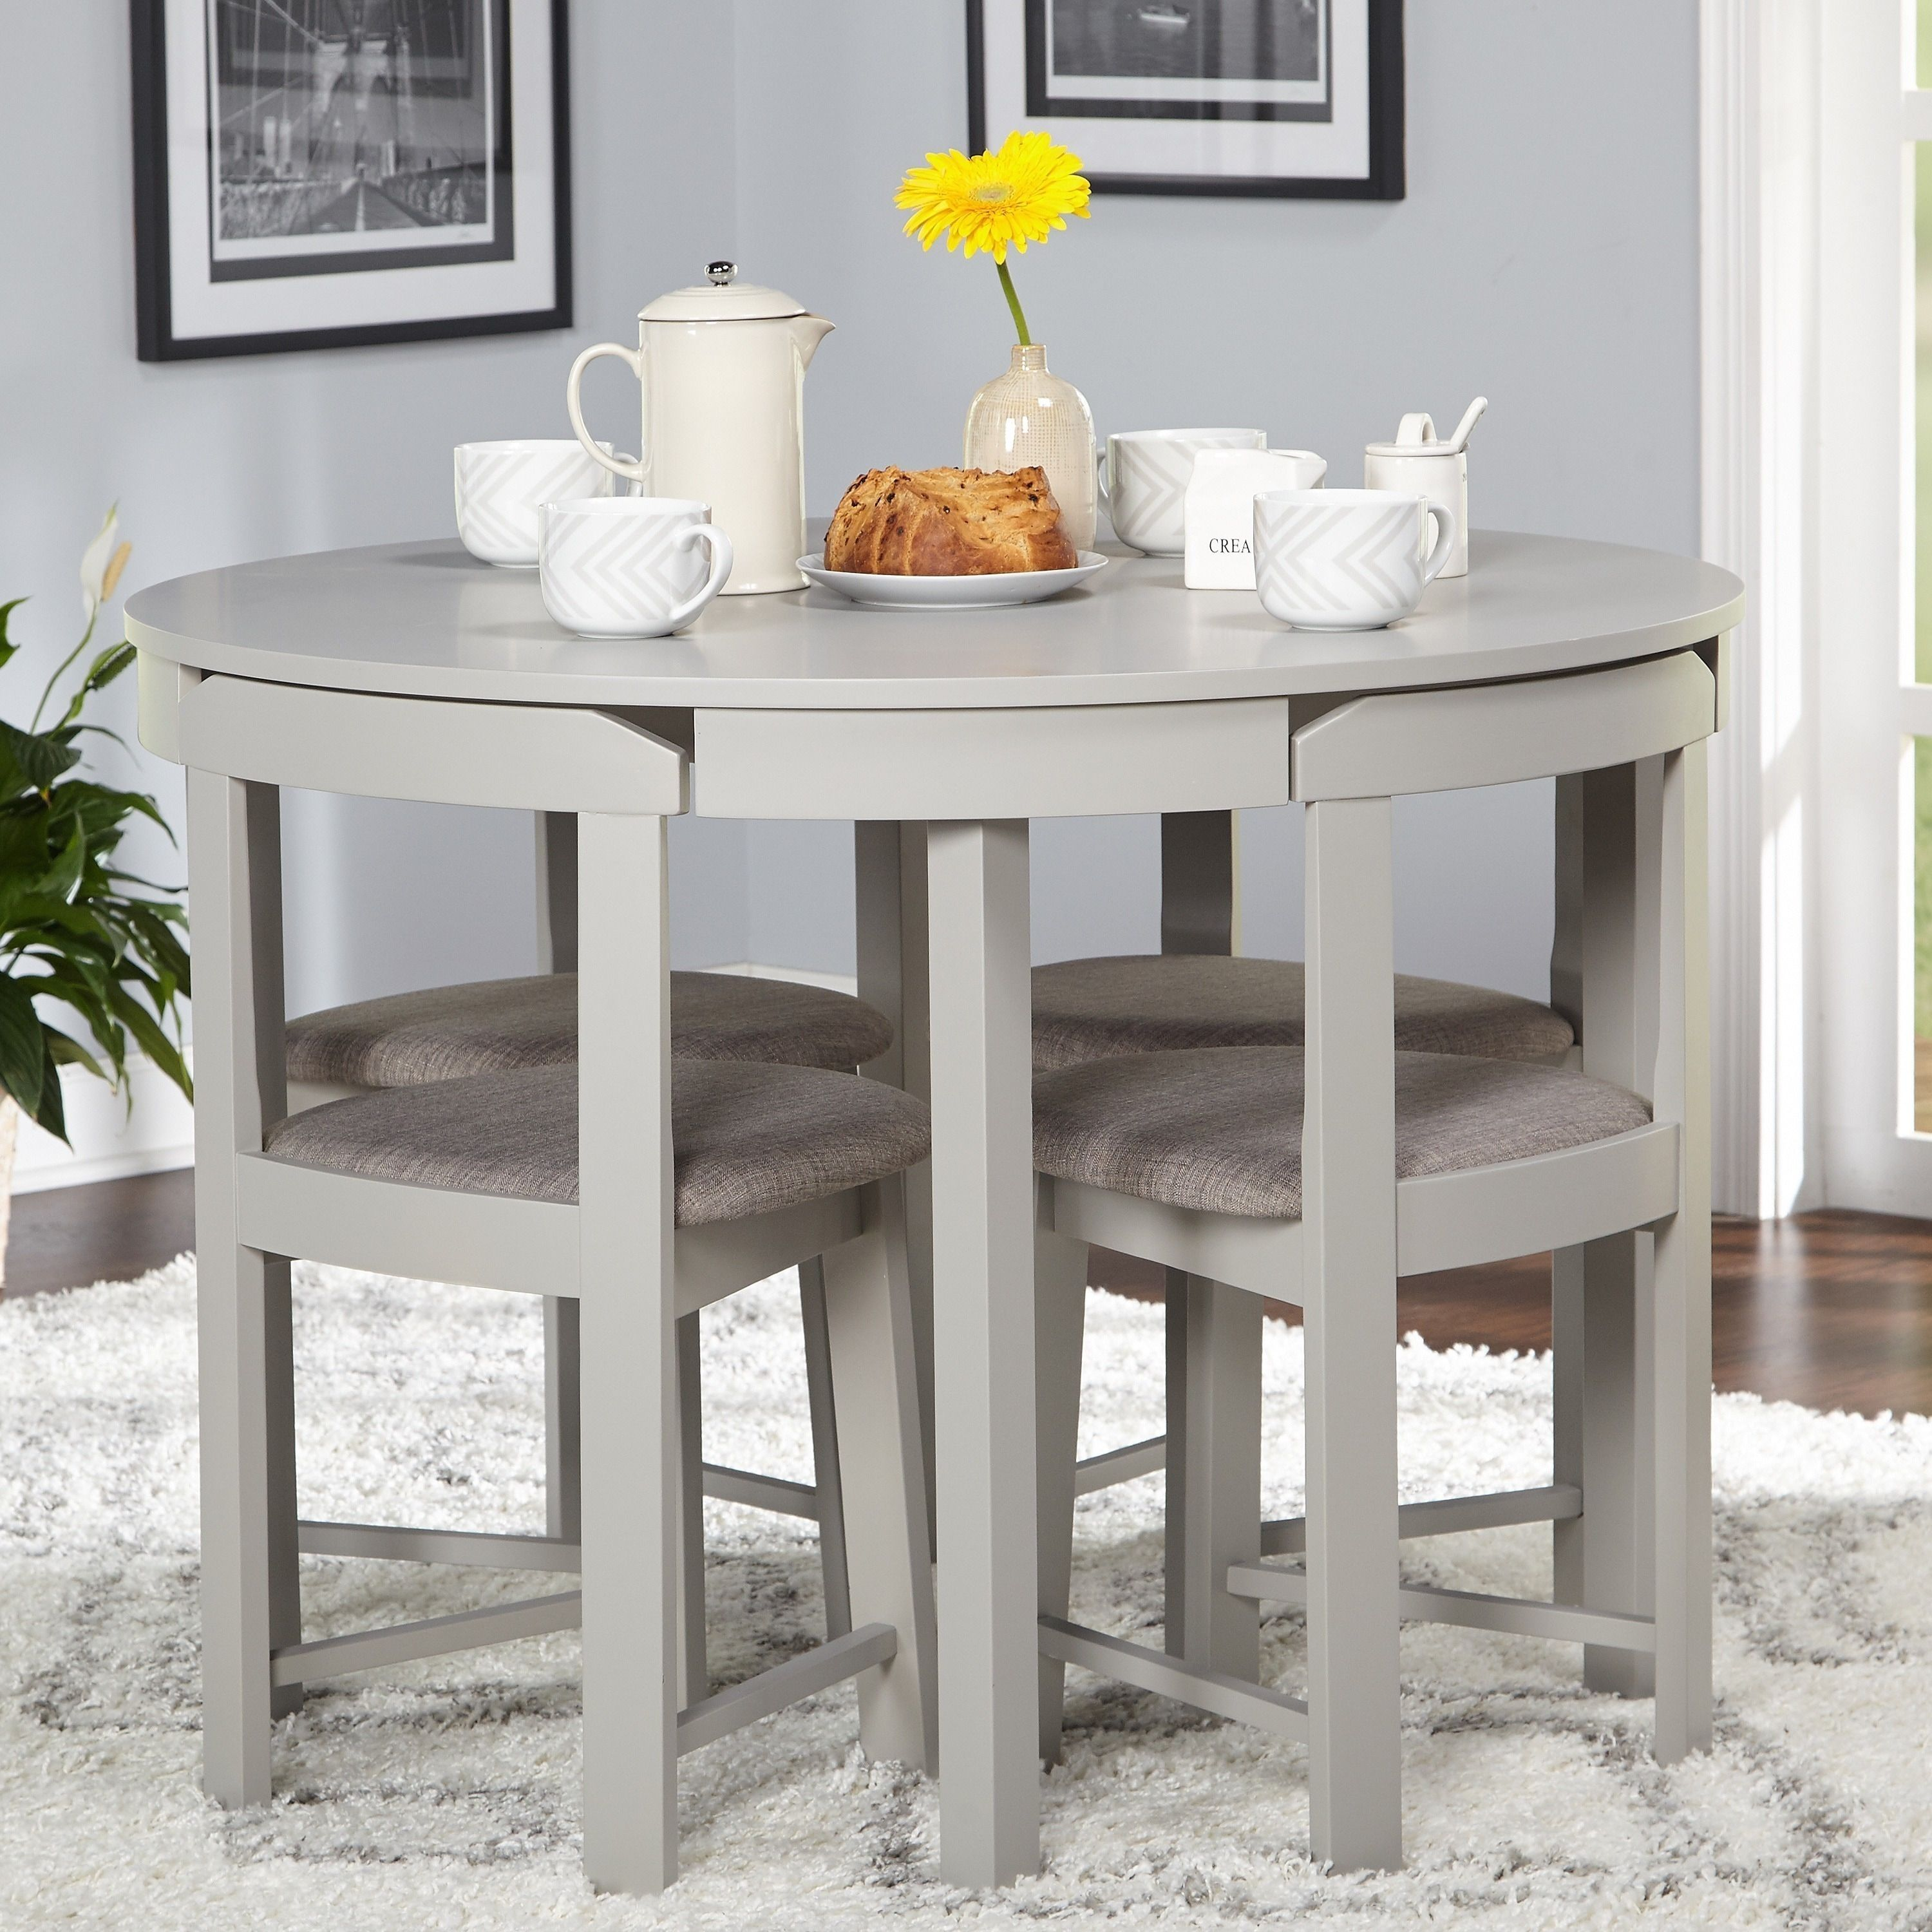 Overstock Com Online Shopping Bedding Furniture Electronics Jewelry Clothing More Round Dining Room Kitchen Table Settings Dining Room Small